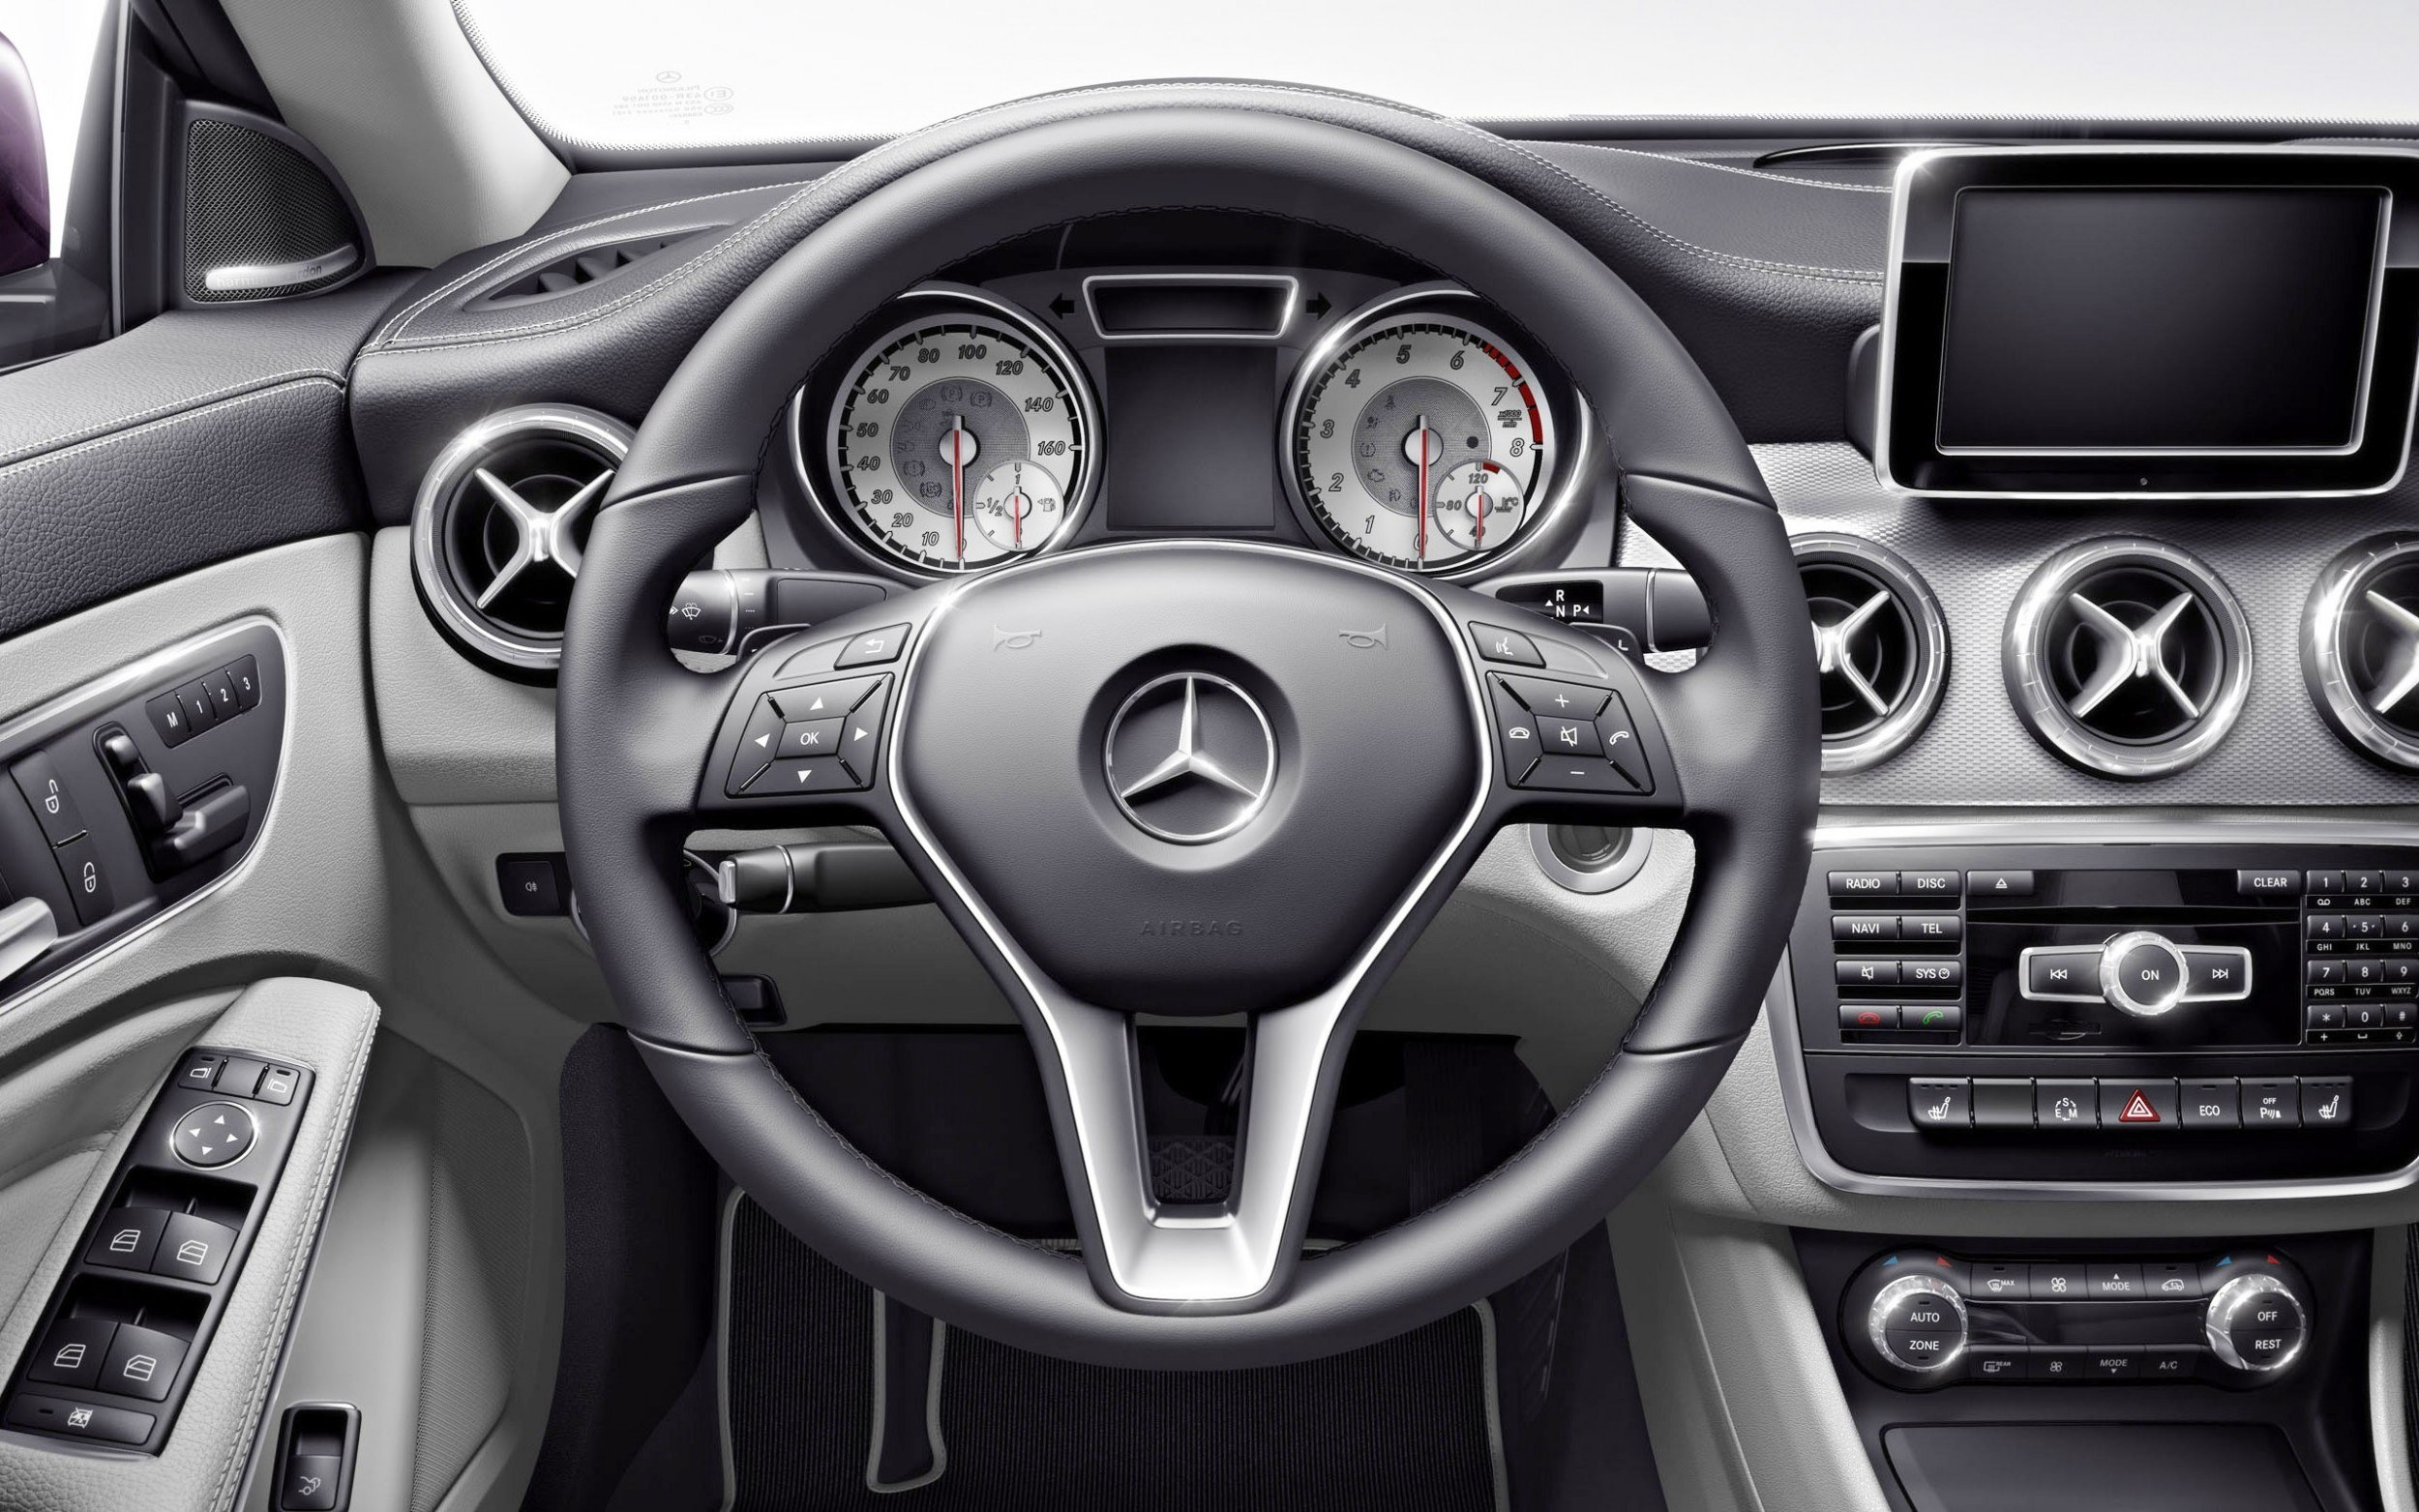 Mercedes Cla 250 Interior Images Galleries With A Bite